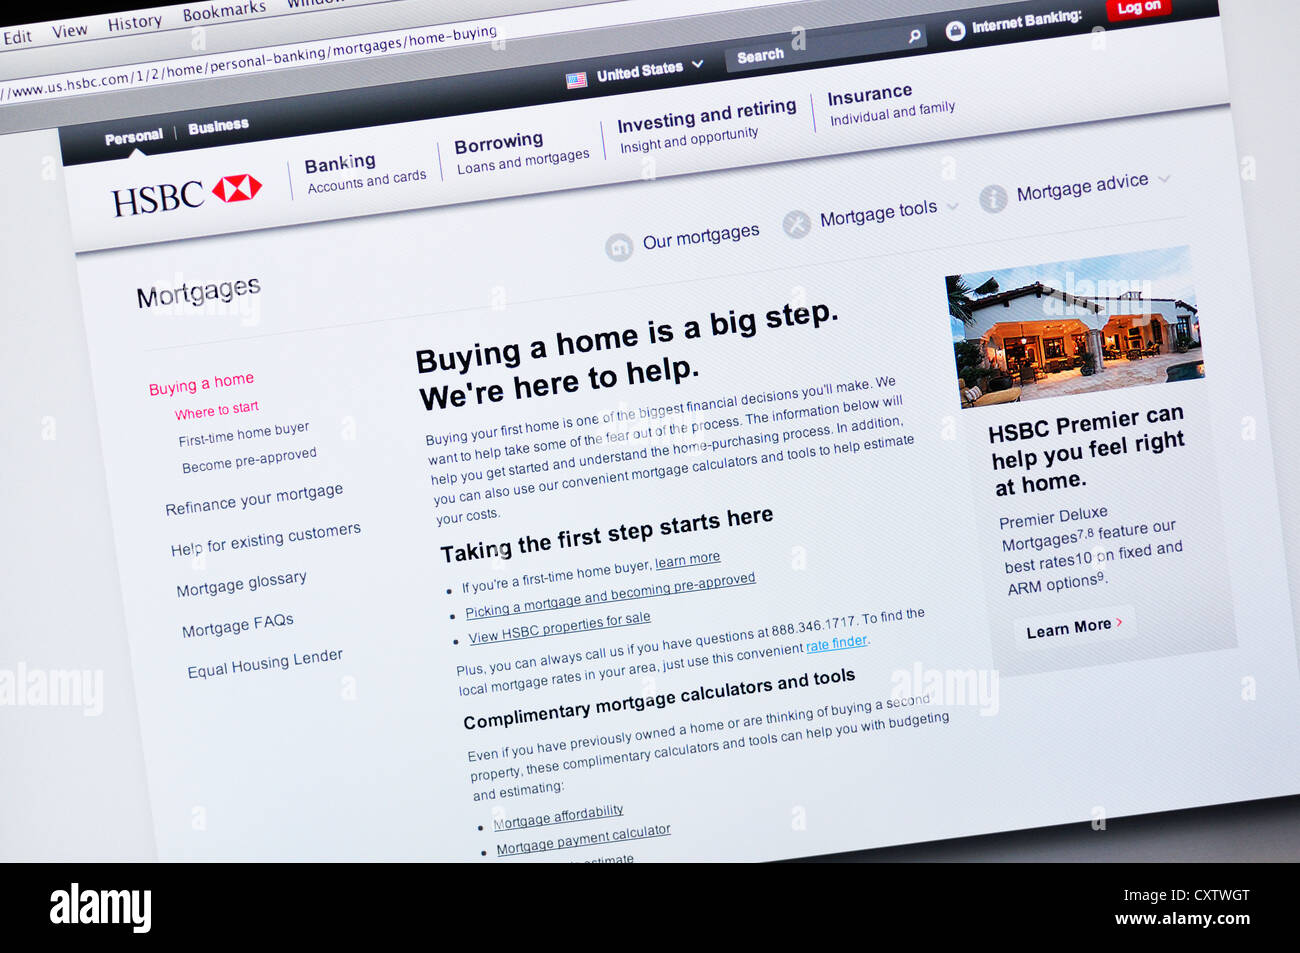 HSBC bank website - online banking and mortgages Stock Photo